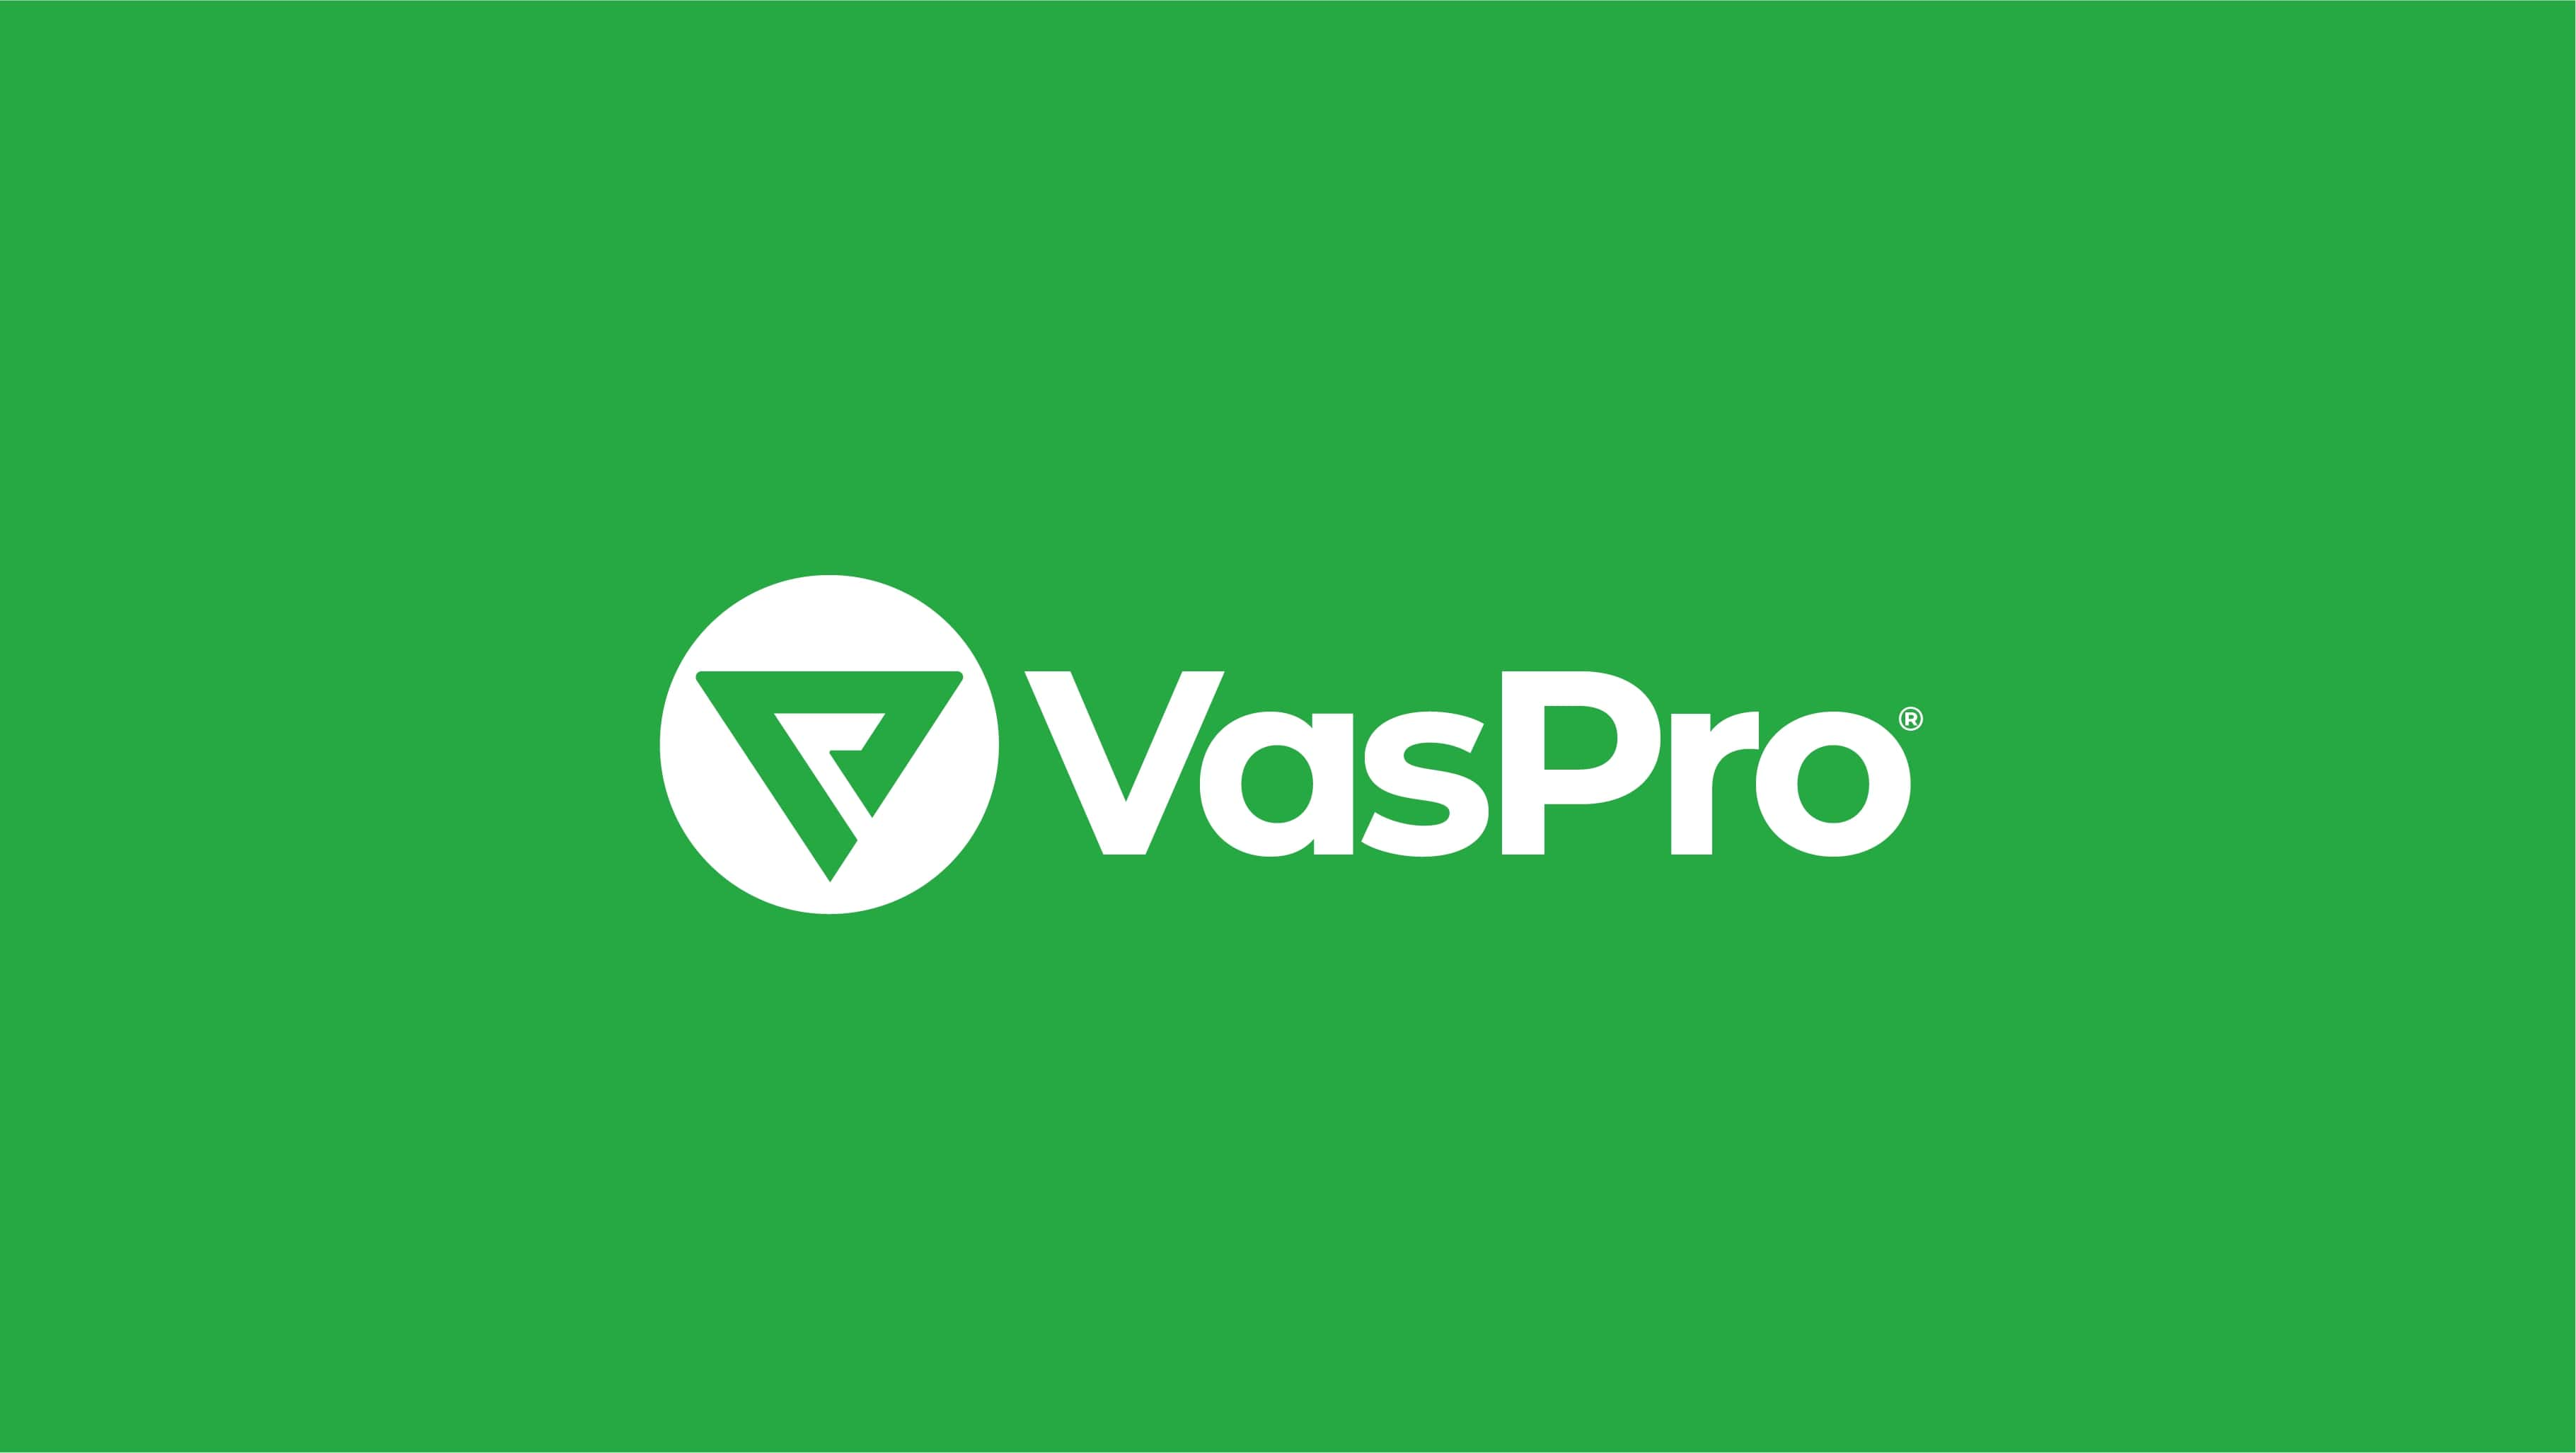 VasPro Limited